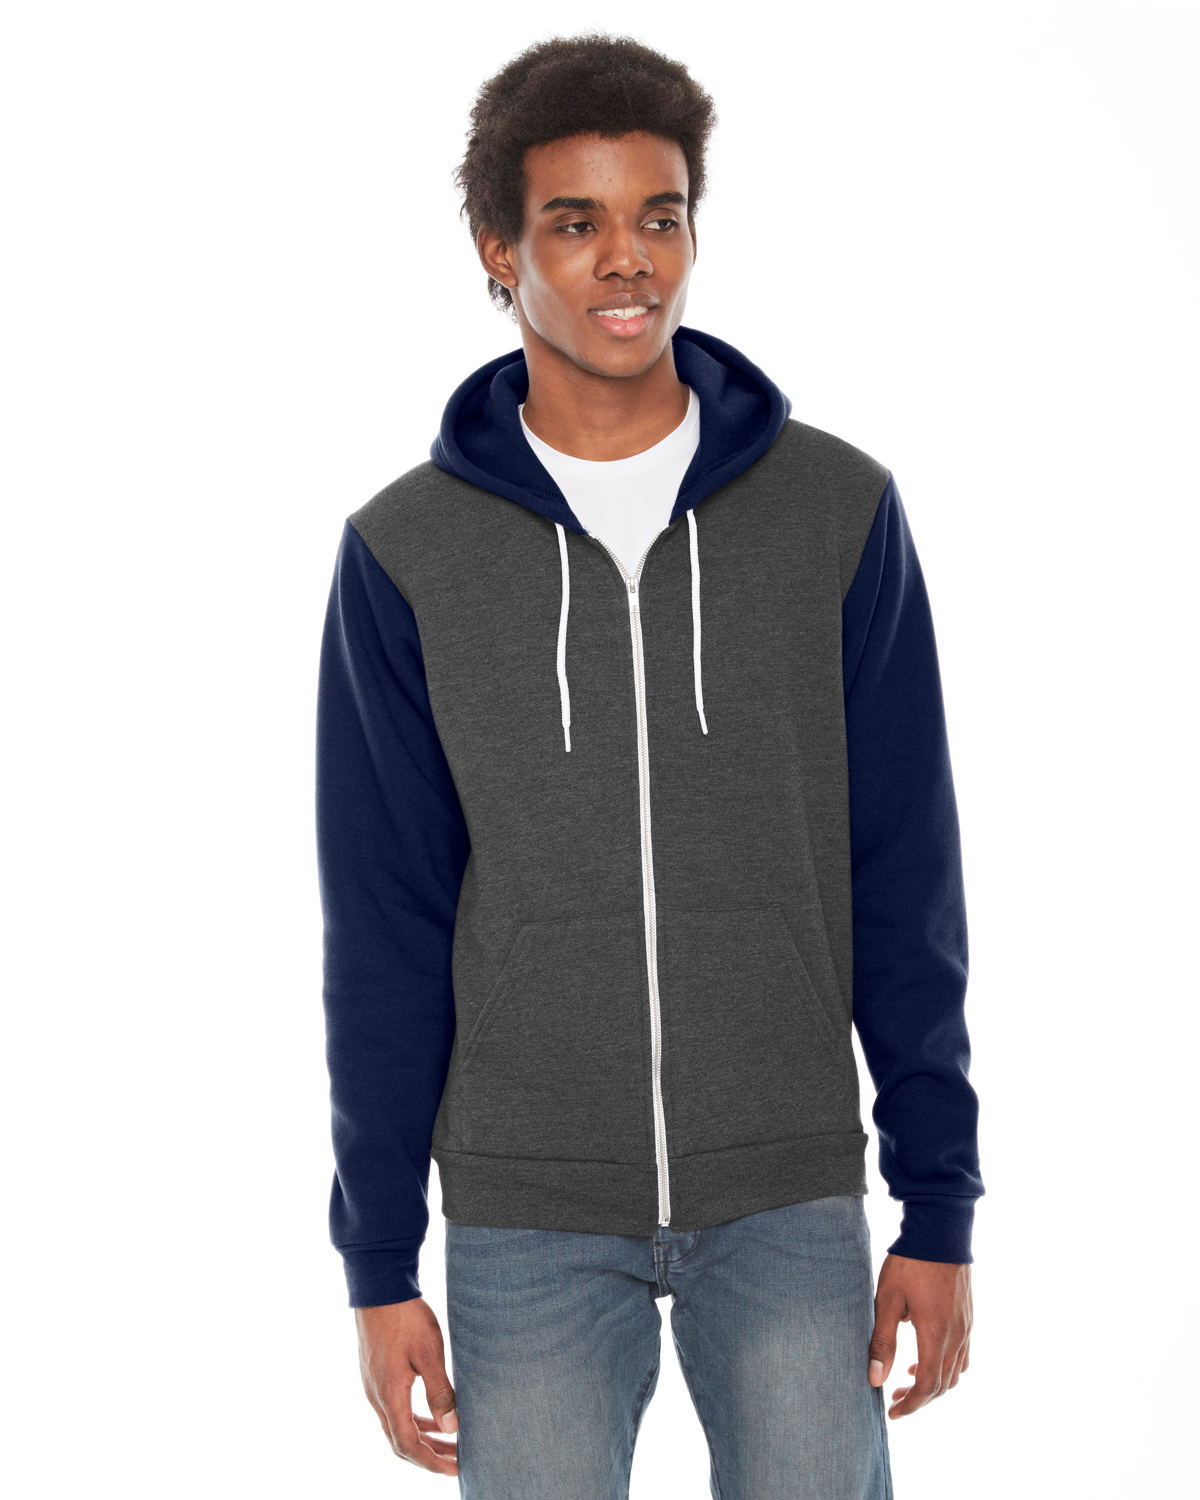 click to view Dk Hth Gry/ Navy